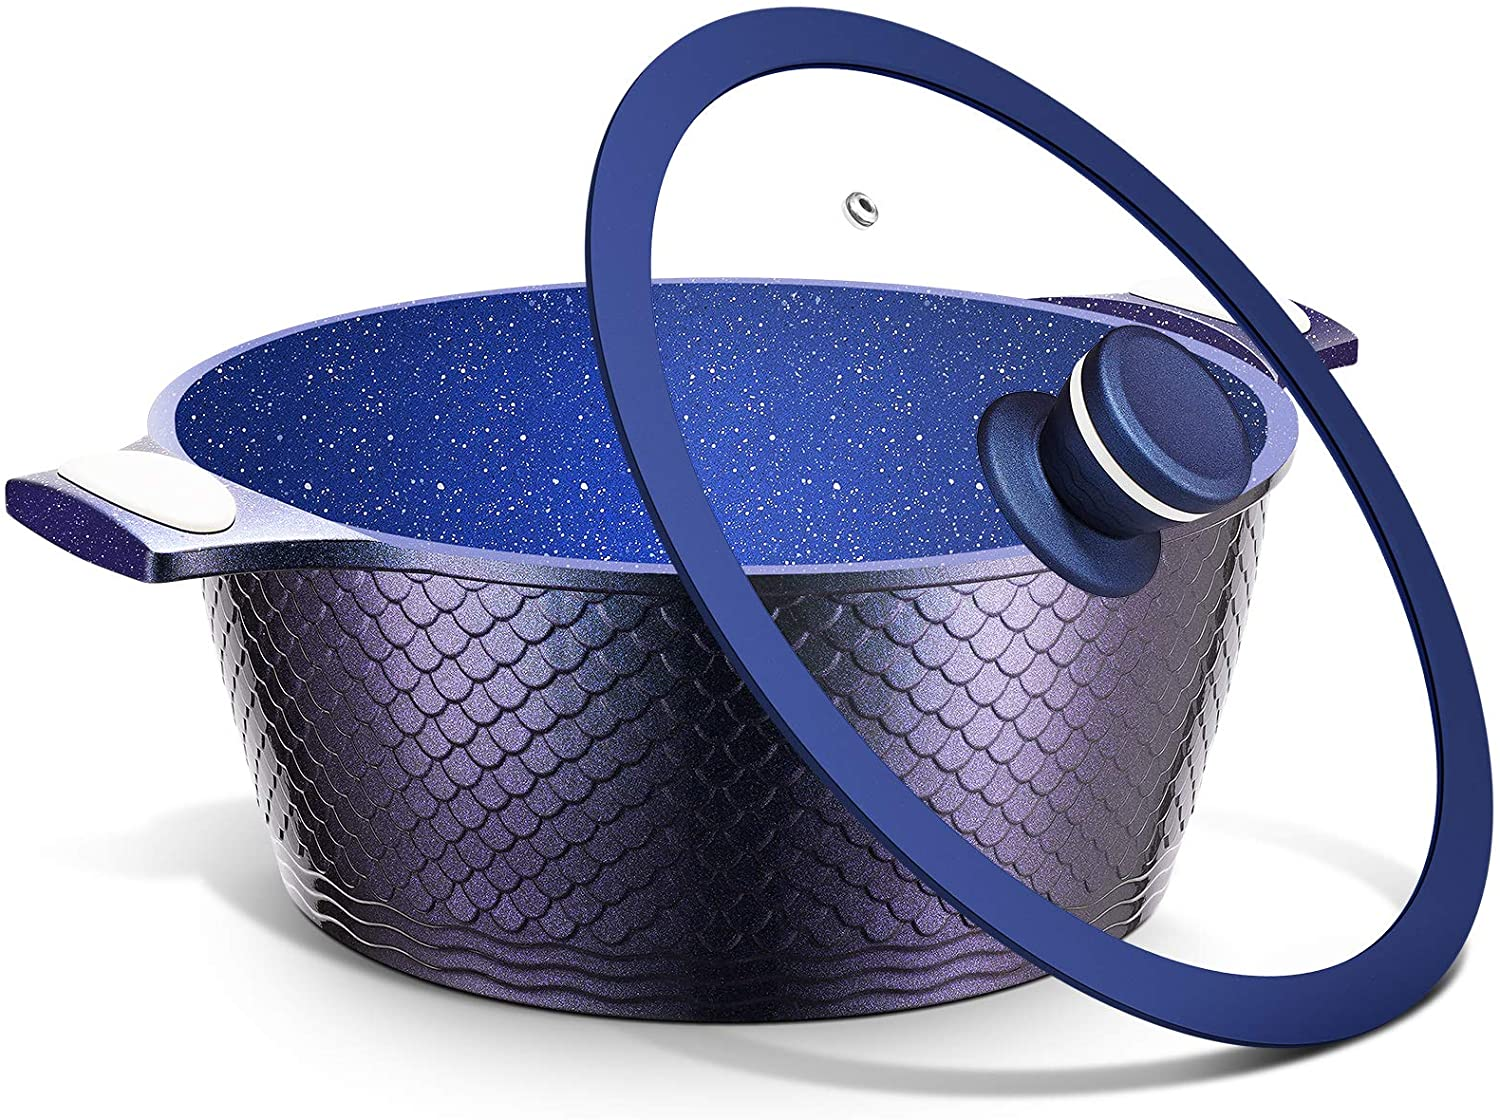 5QT Stock Pot with Lid - Nonstick Saucepan Cooking Pot Pasta Pot with USA Blue Gradient Granite Derived Coating, Heat-resisted Silicon Handle,PFOA&PFOS Free,Induction Compatible, Ideal Christmas Gift